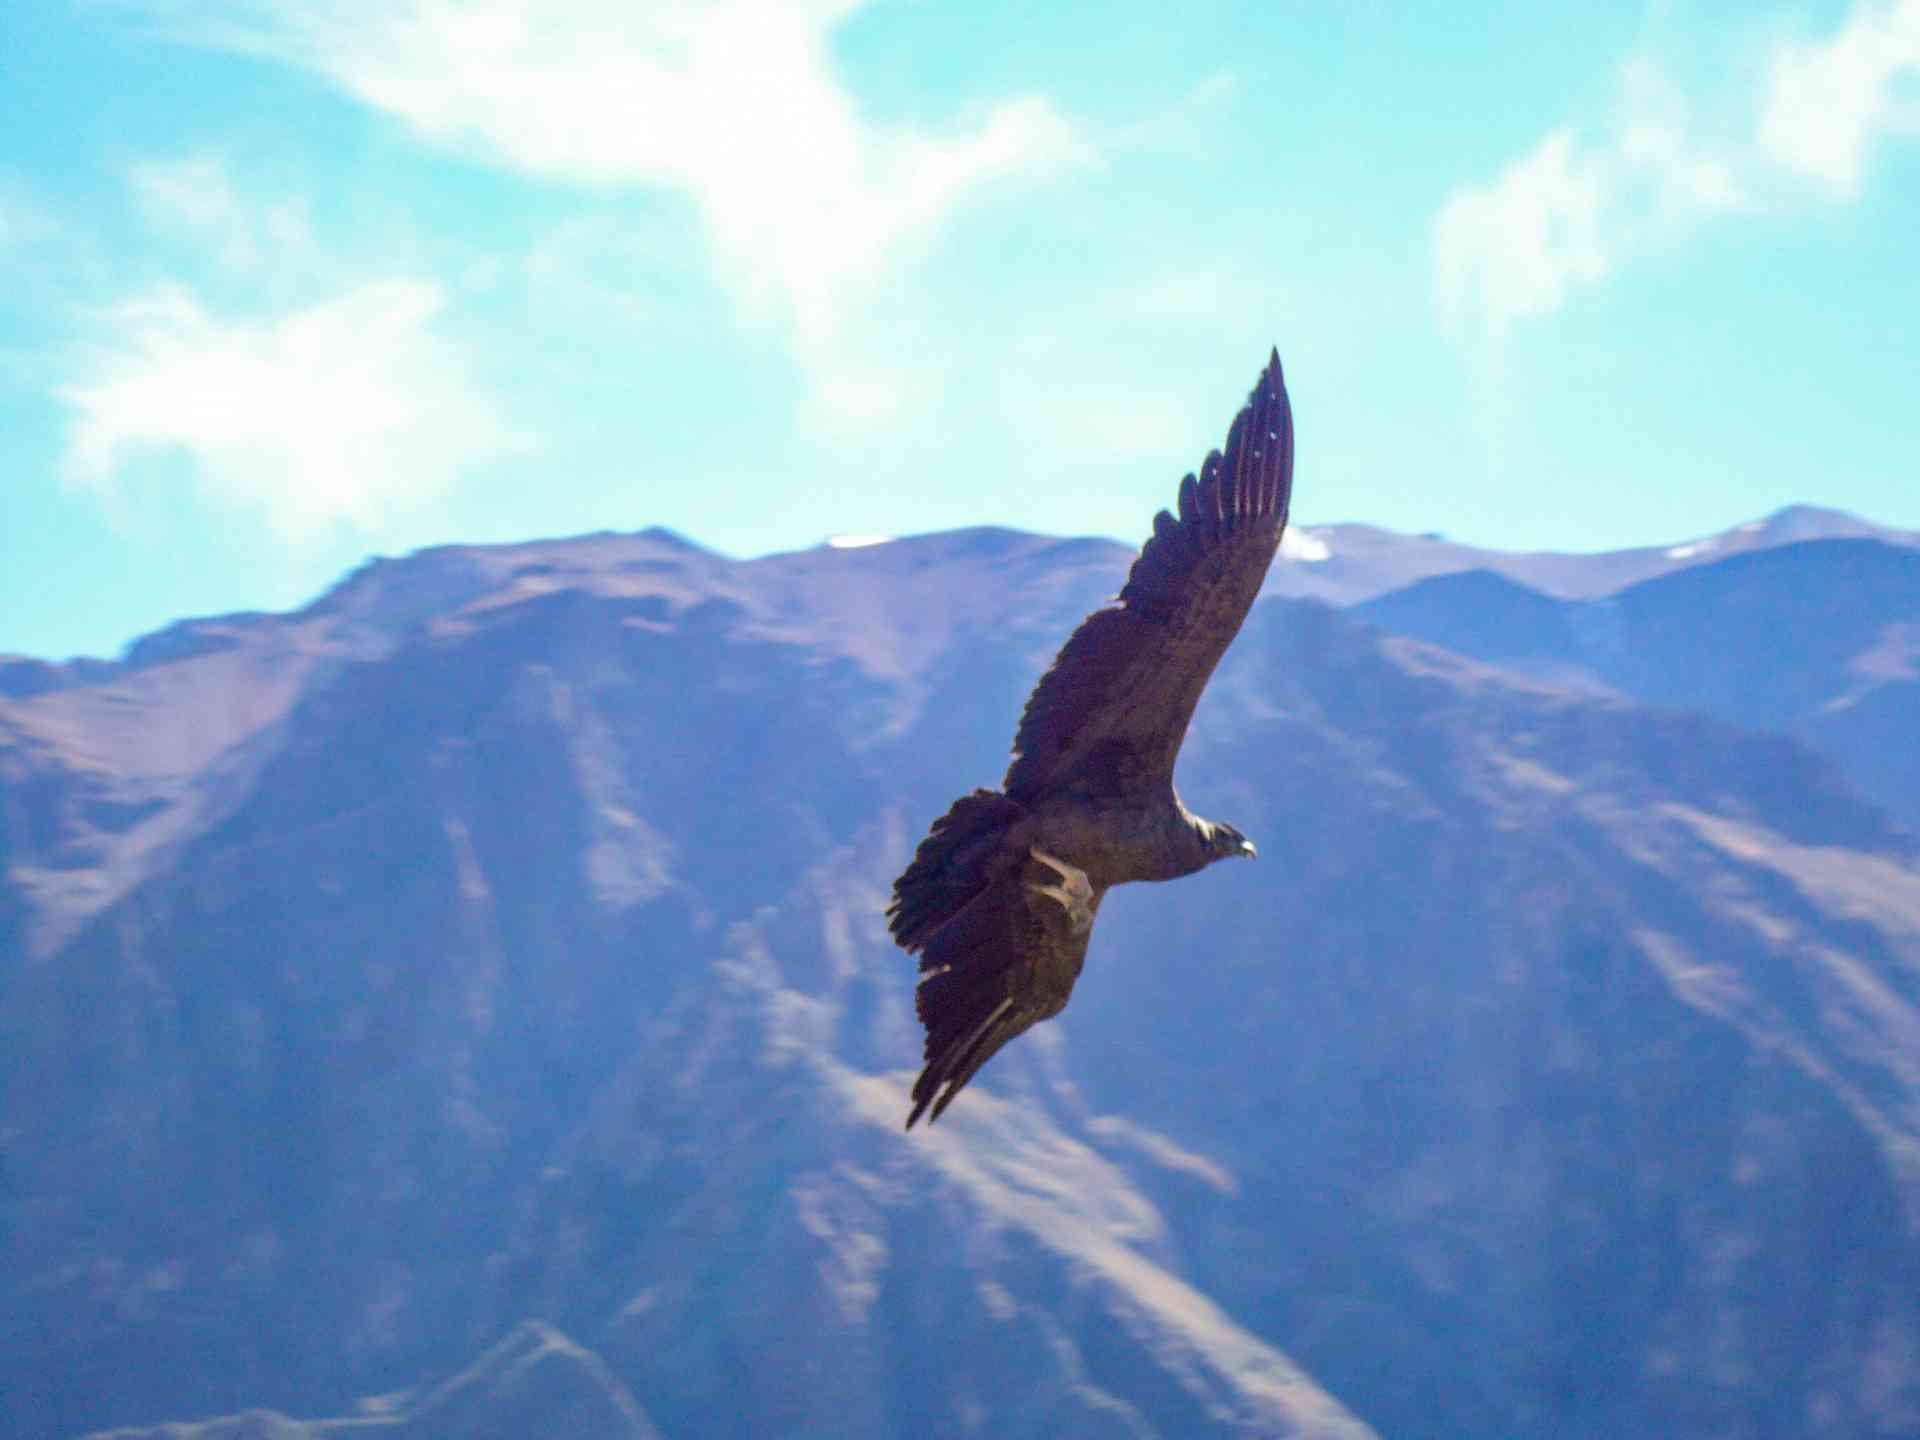 Cross of the Condor, Colca Canyon, Peru by Marion Bunnik